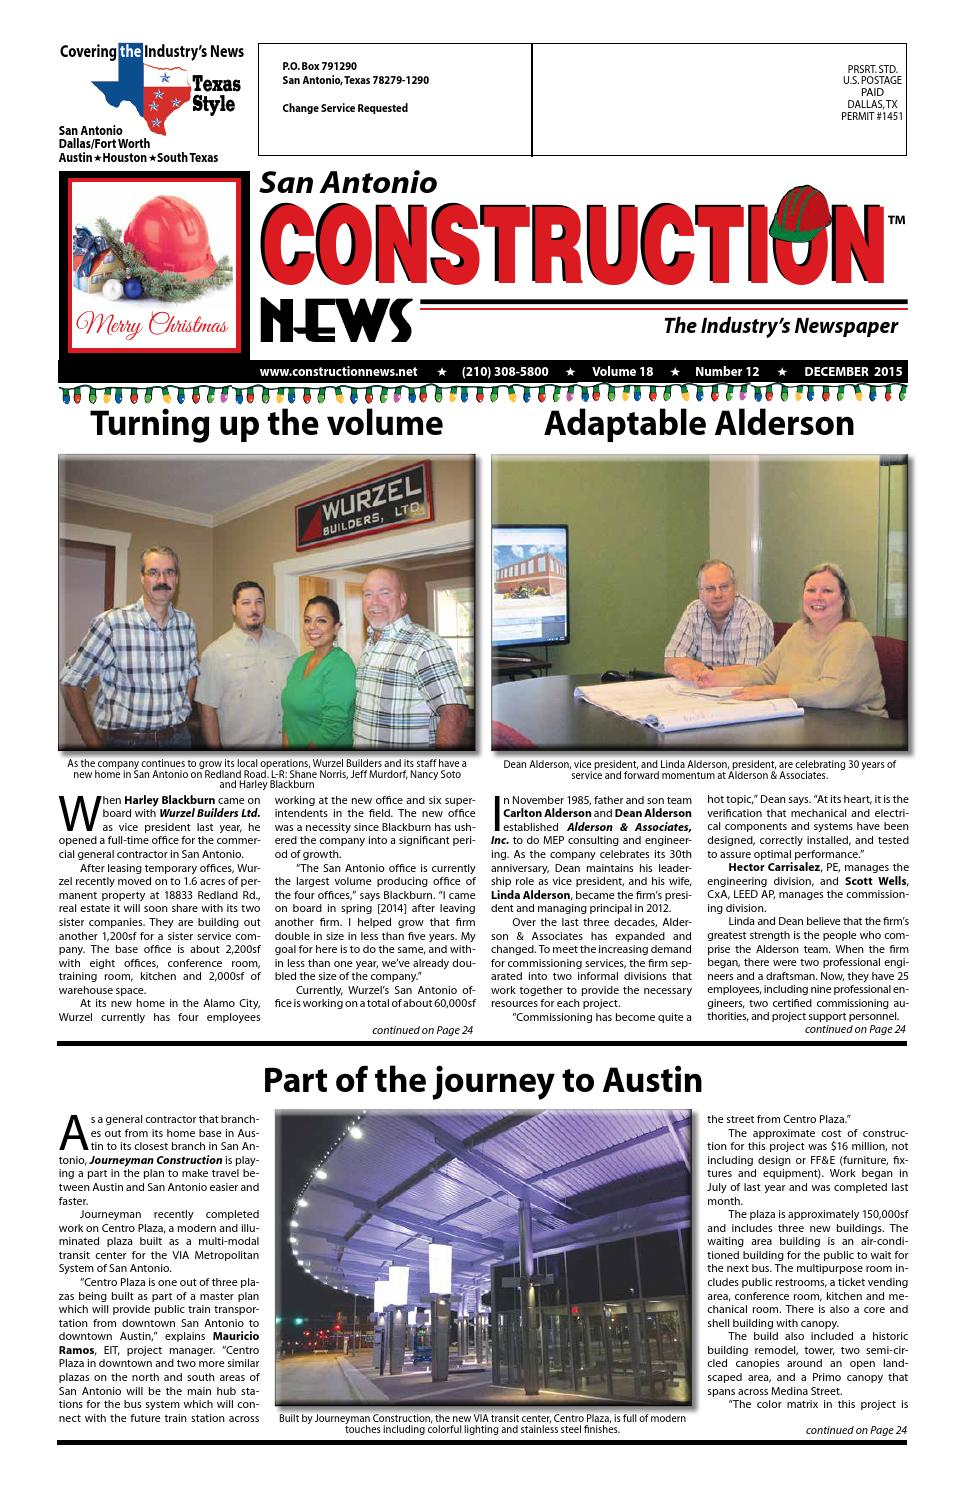 Chase brass and copper company addition turner construction company - San Antonio Construction News December 2015 By Construction News Ltd Issuu